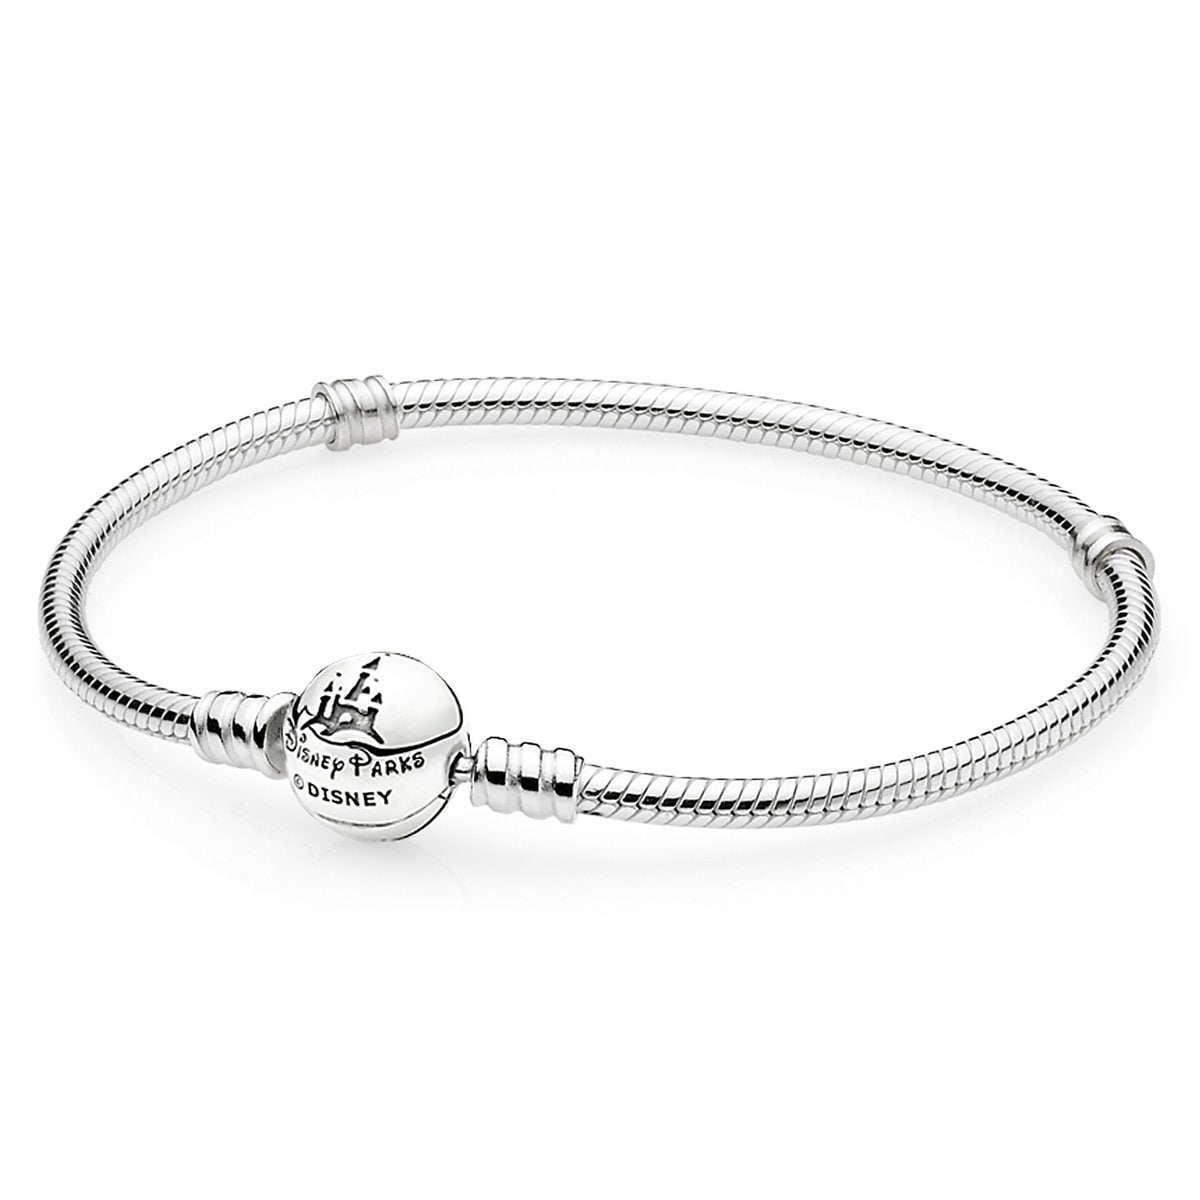 4bedd7a2a Product Image of Wonderful World Bracelet by Pandora Jewelry - 6.3'' # 1